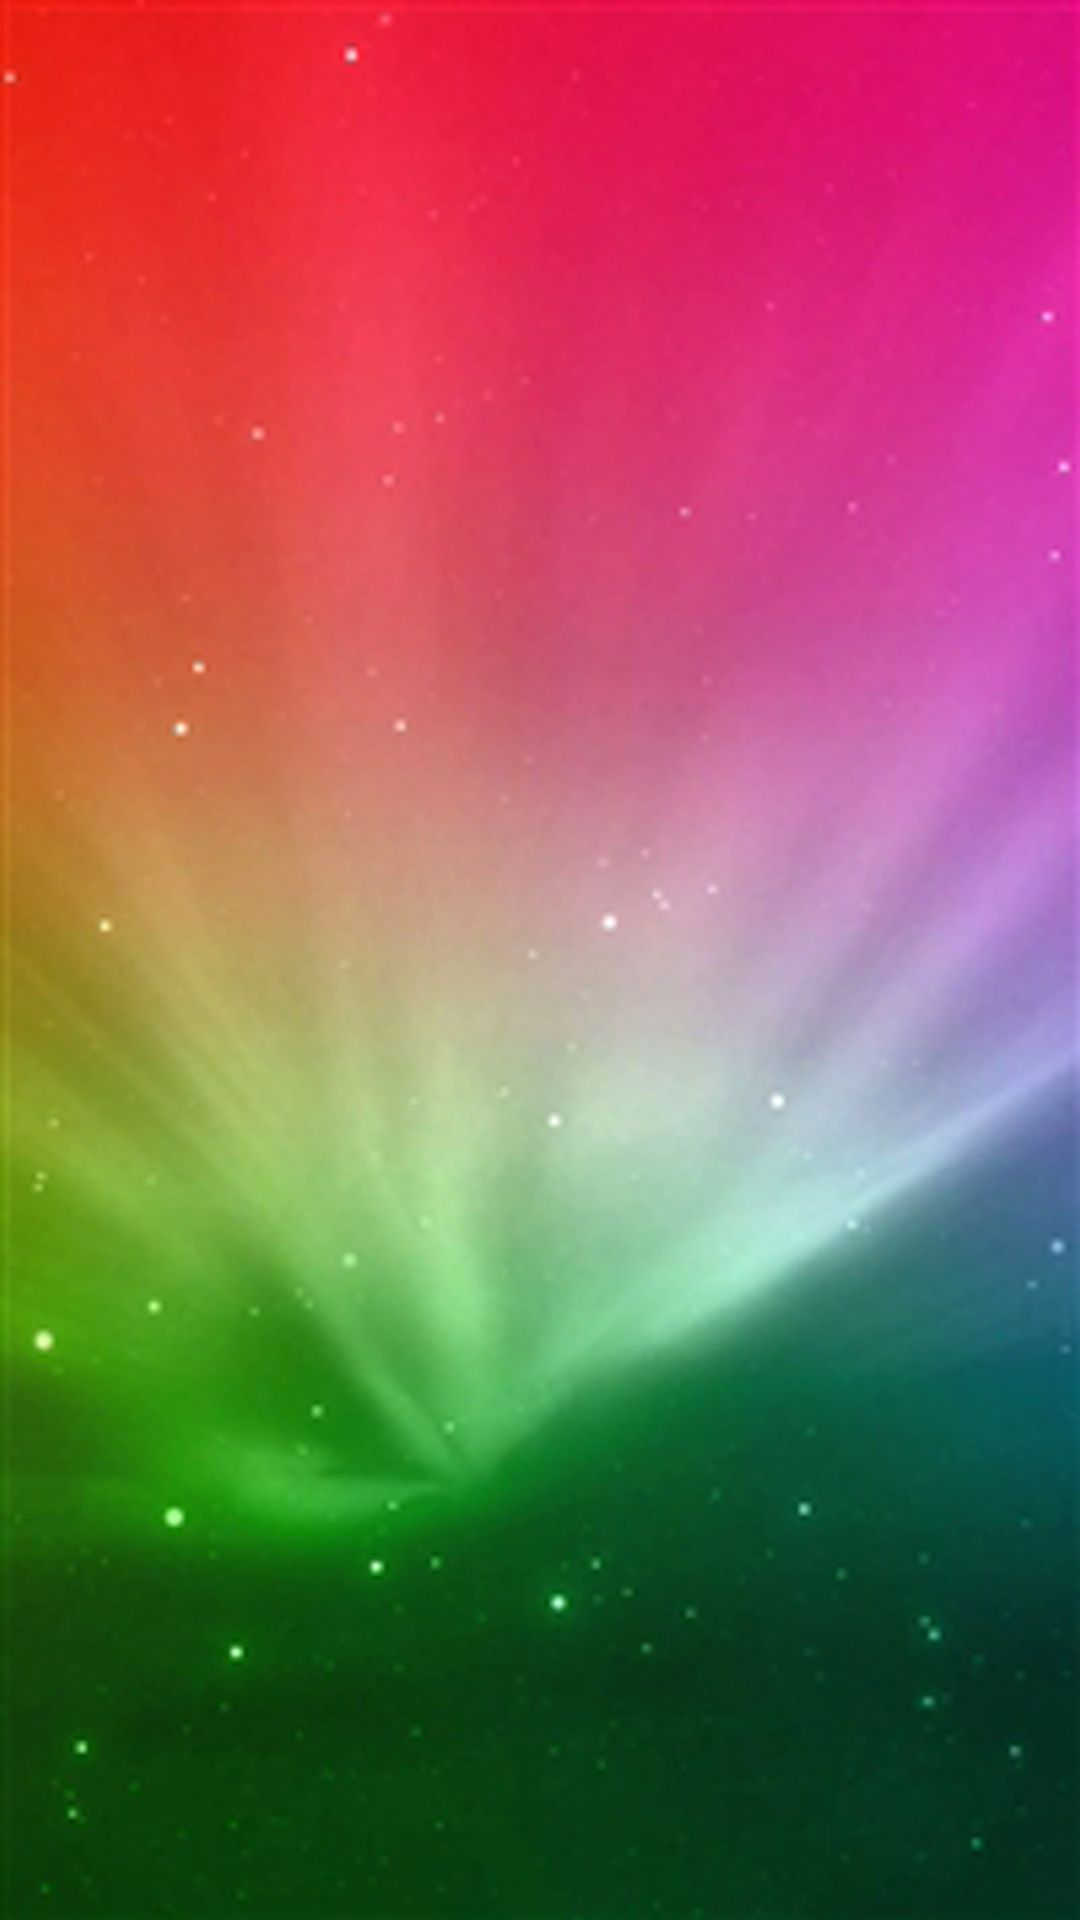 Lg Moto G Android HD Wallpaper & Backgrounds